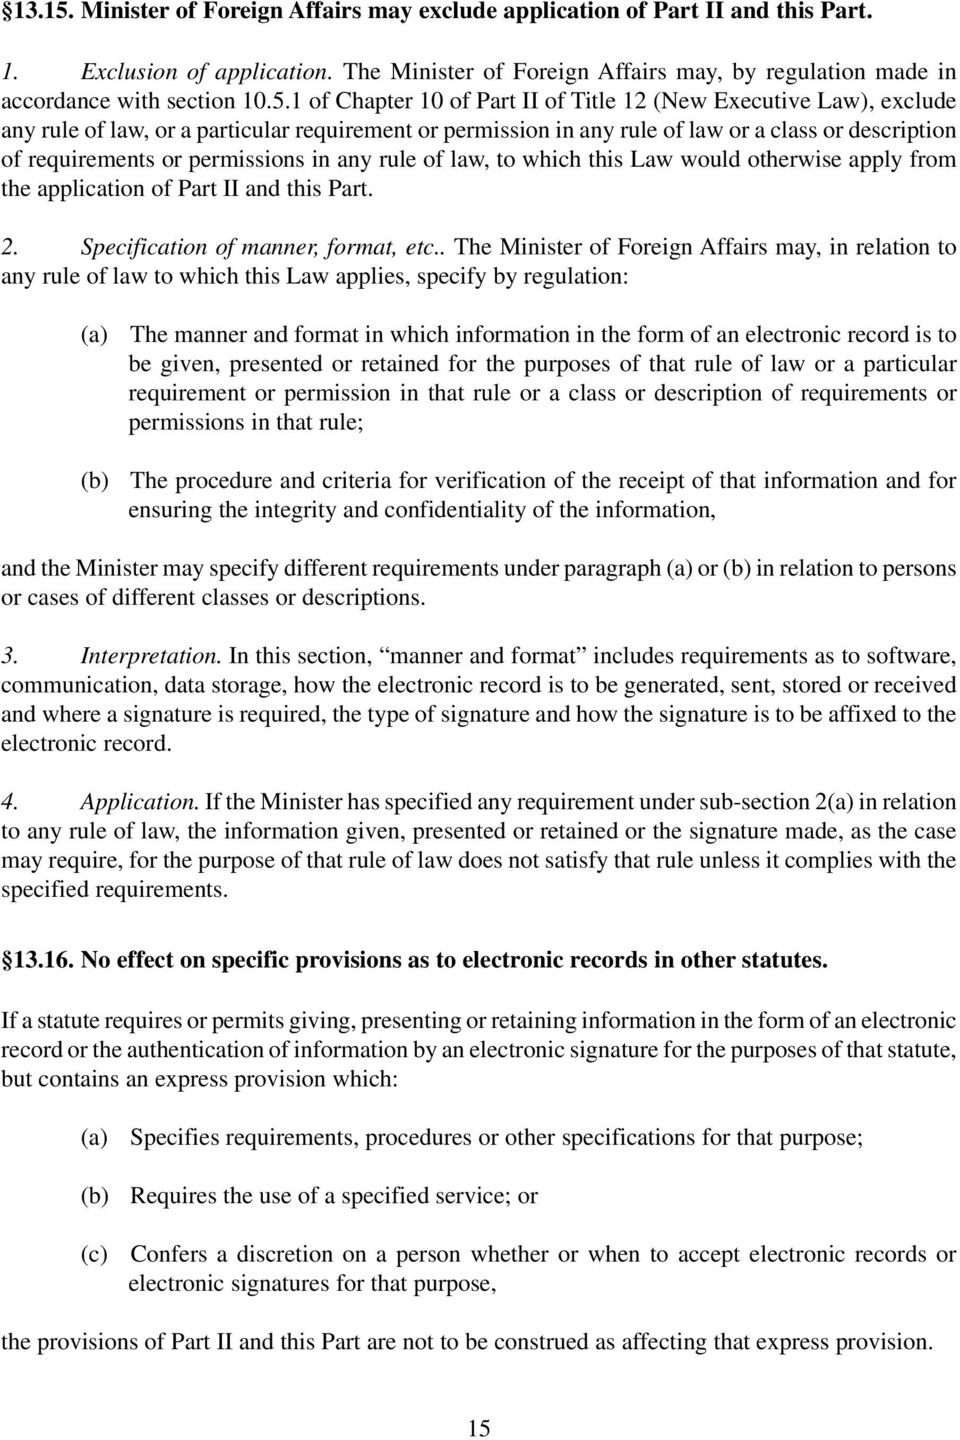 permissions in any rule of law, to which this Law would otherwise apply from the application of Part II and this Part. 2. Specification of manner, format, etc.